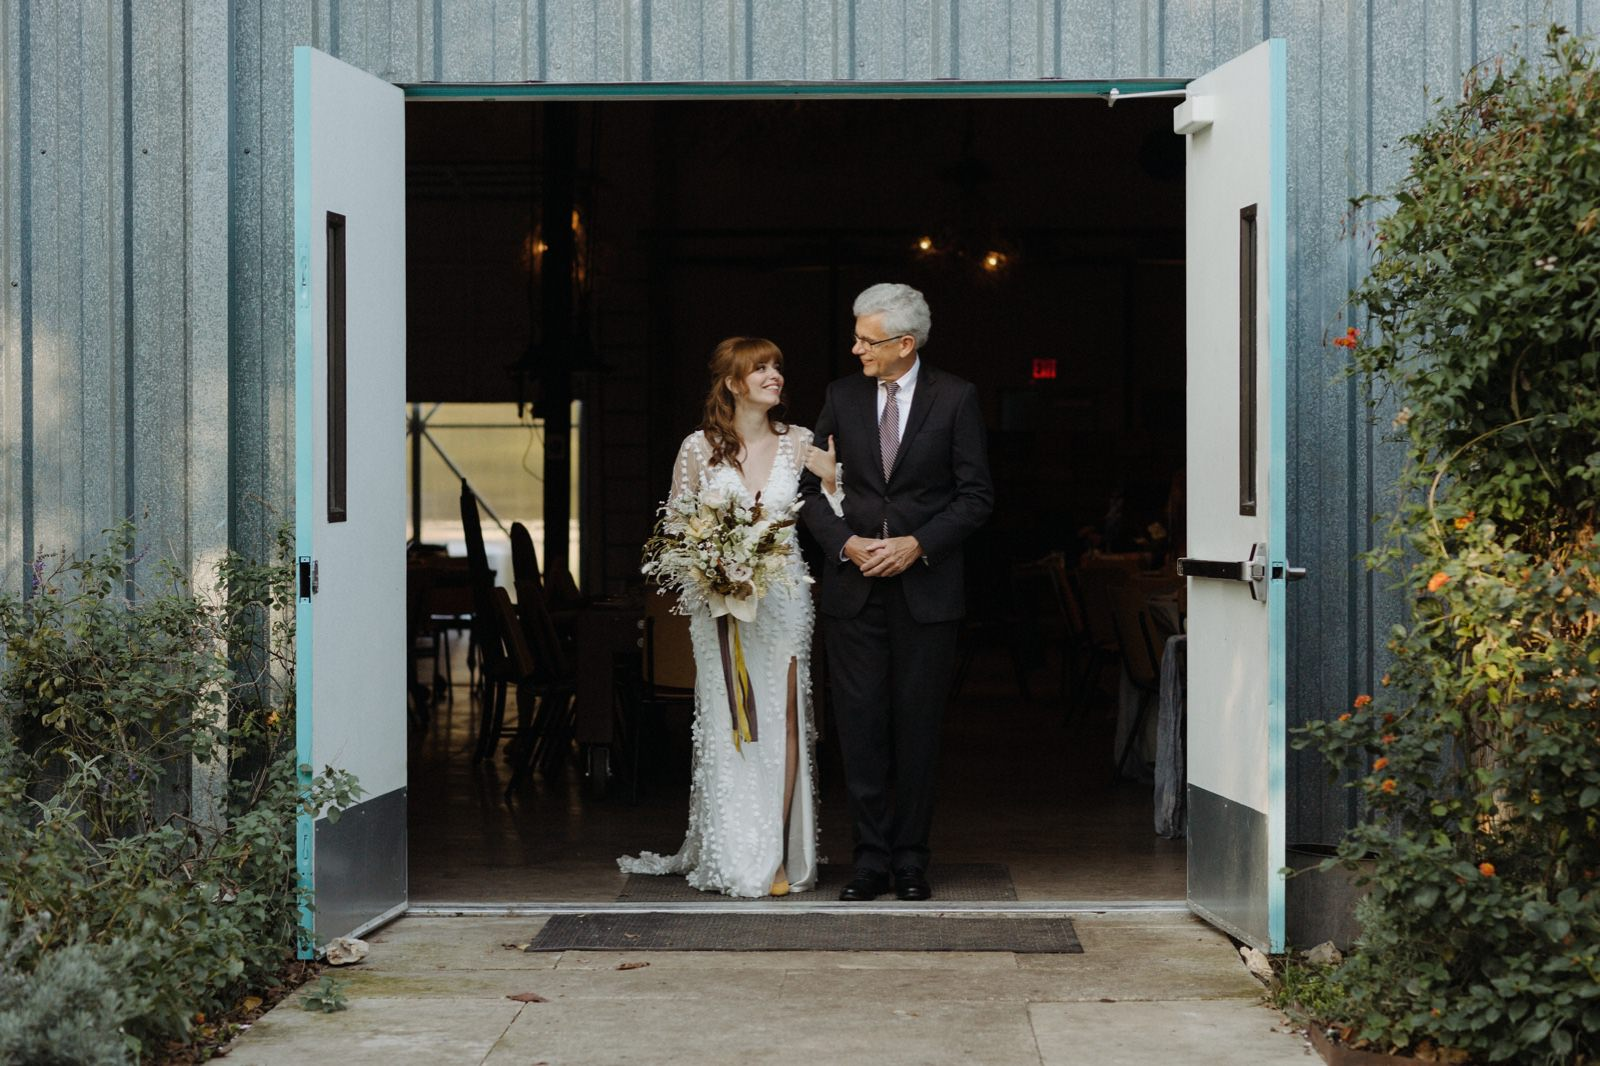 Bride and her father exiting Vuka at Bouldin Creek for the outdoor backyard wedding ceremony